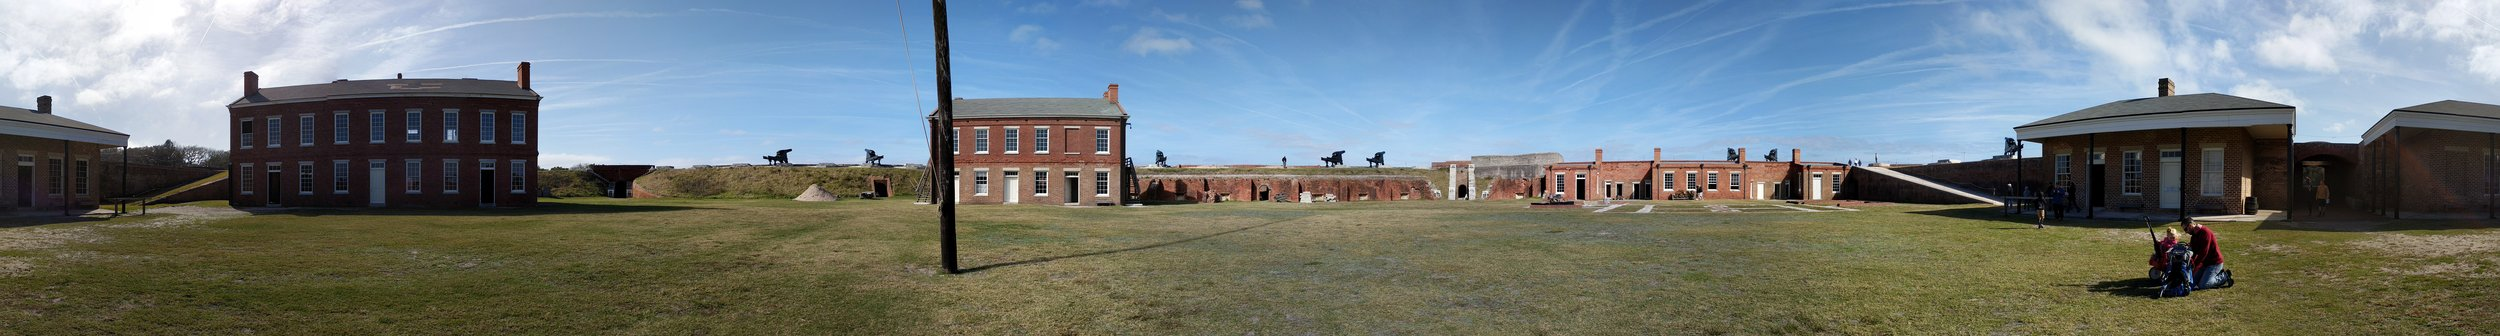 Neat panoramic shot of the inside of Fort Clinch